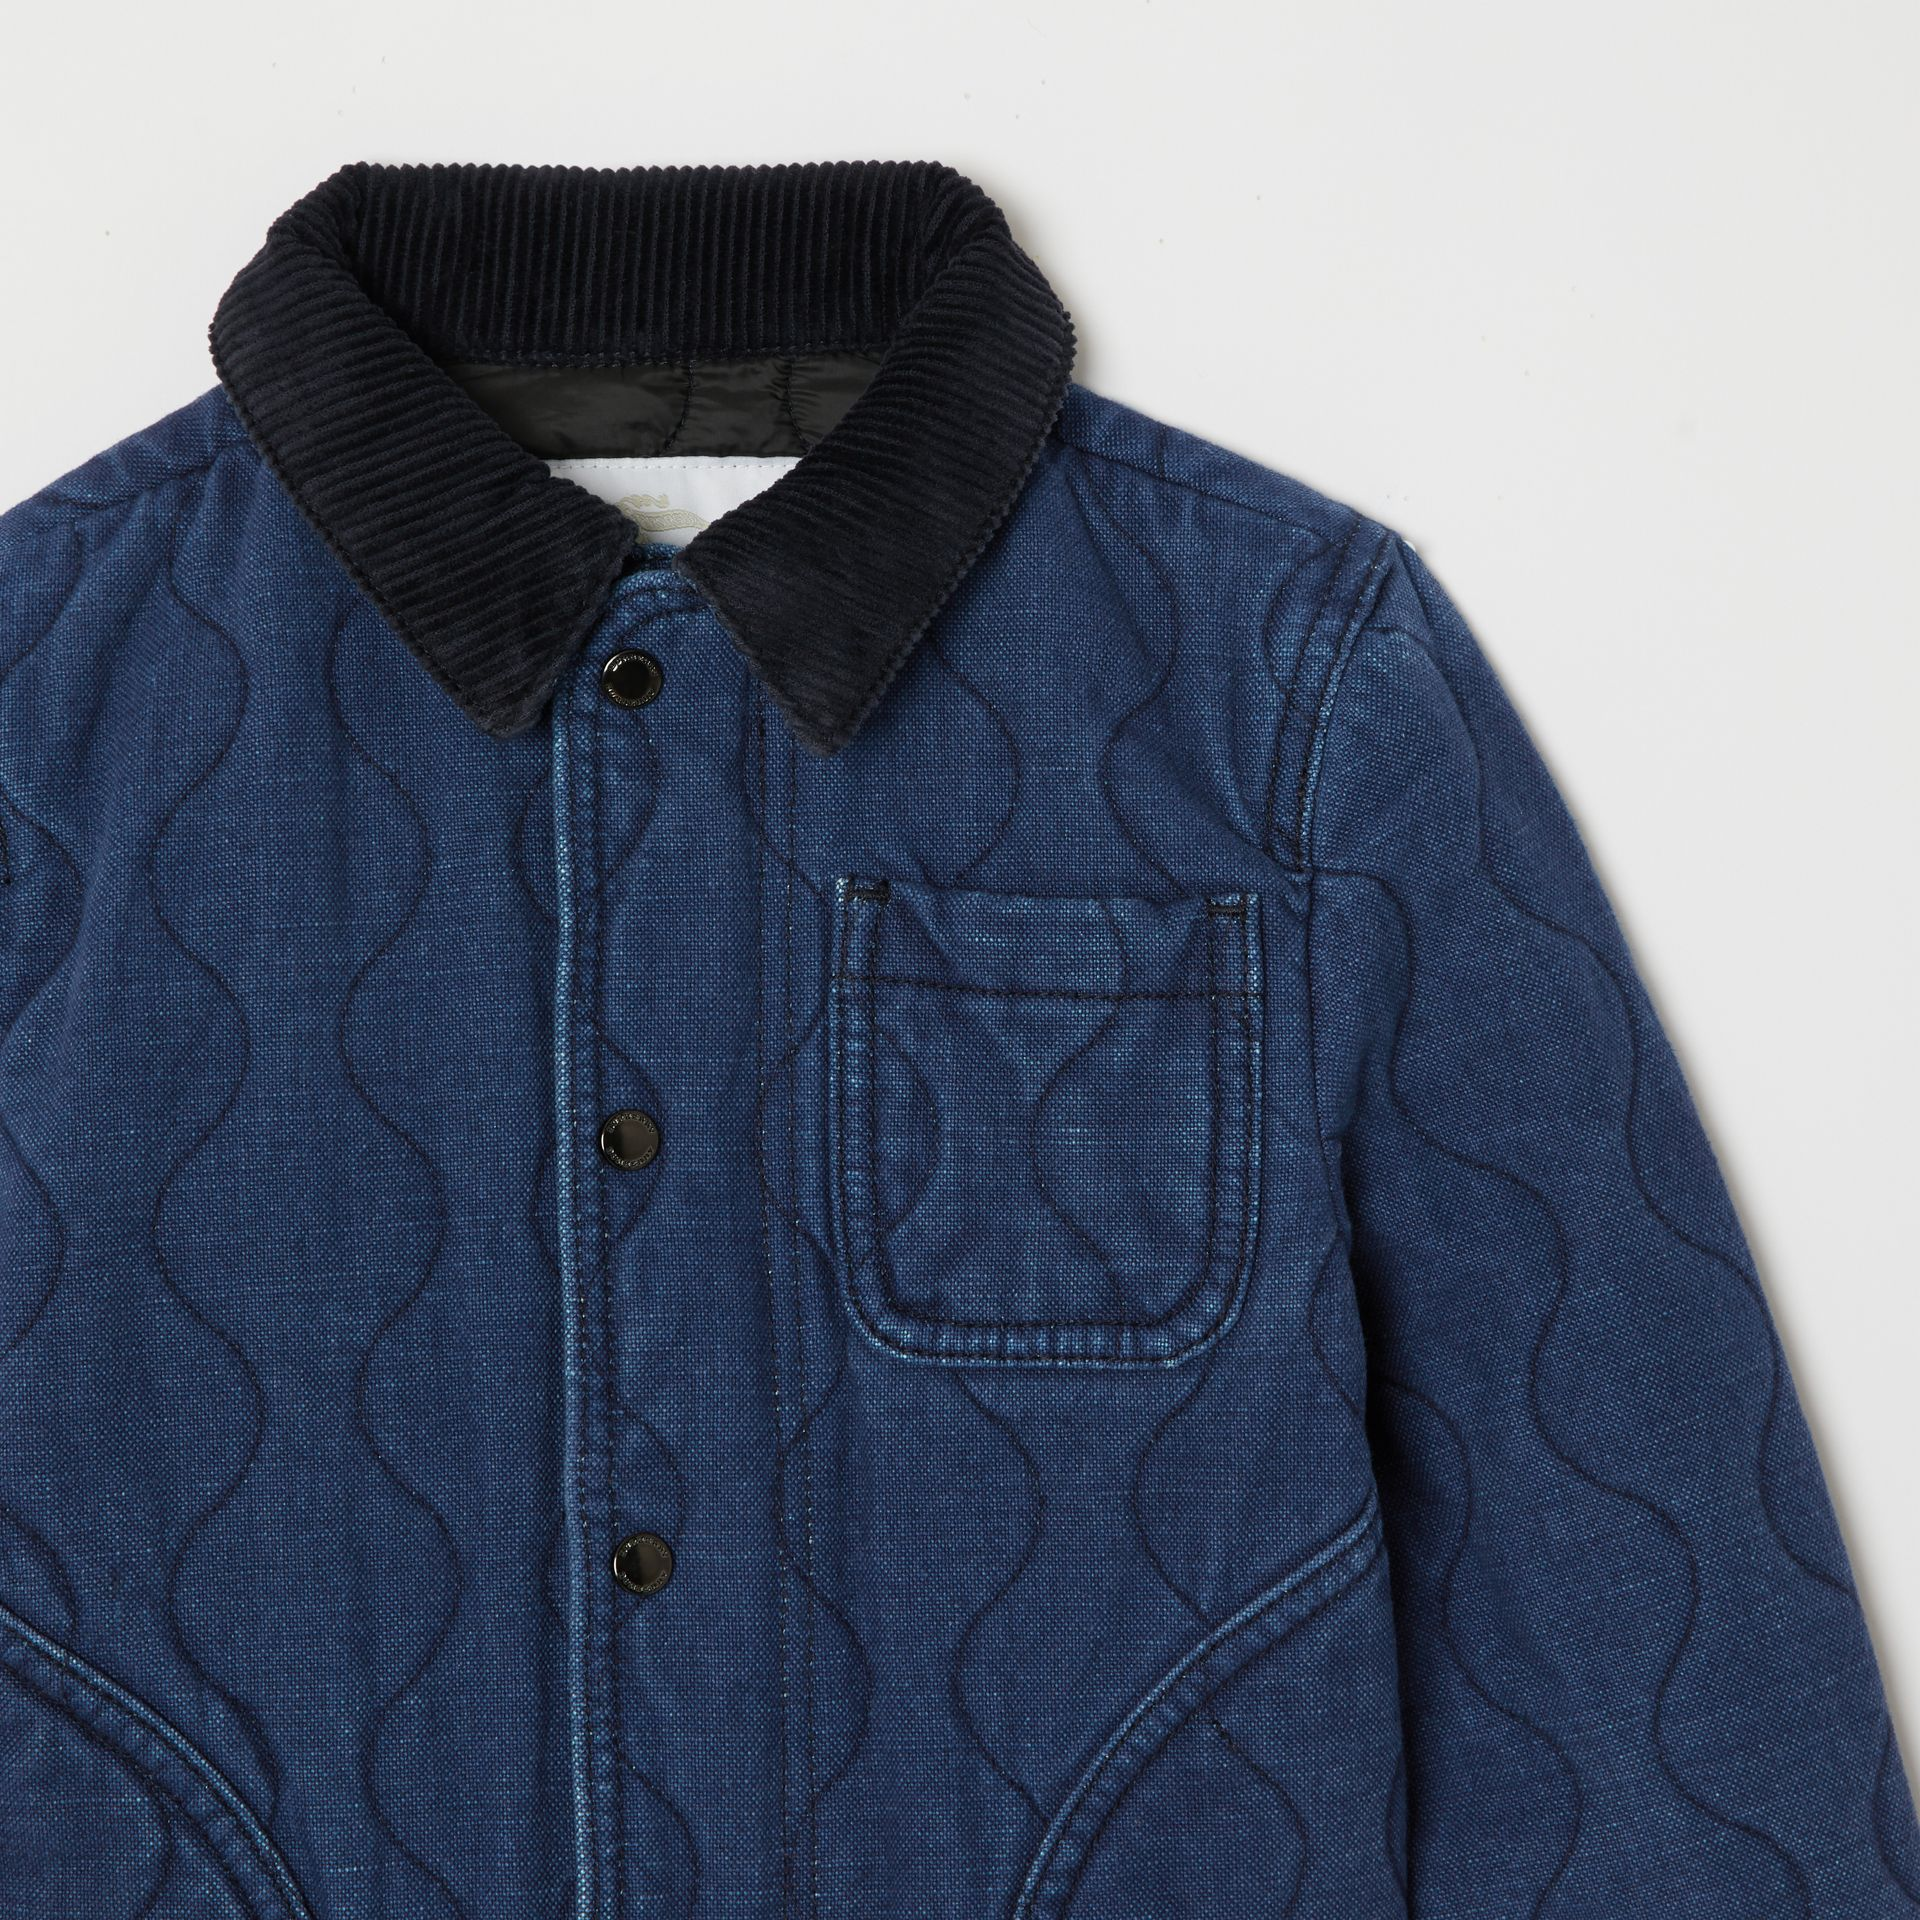 Quilted Denim Jacket in Indigo - Children | Burberry - gallery image 4